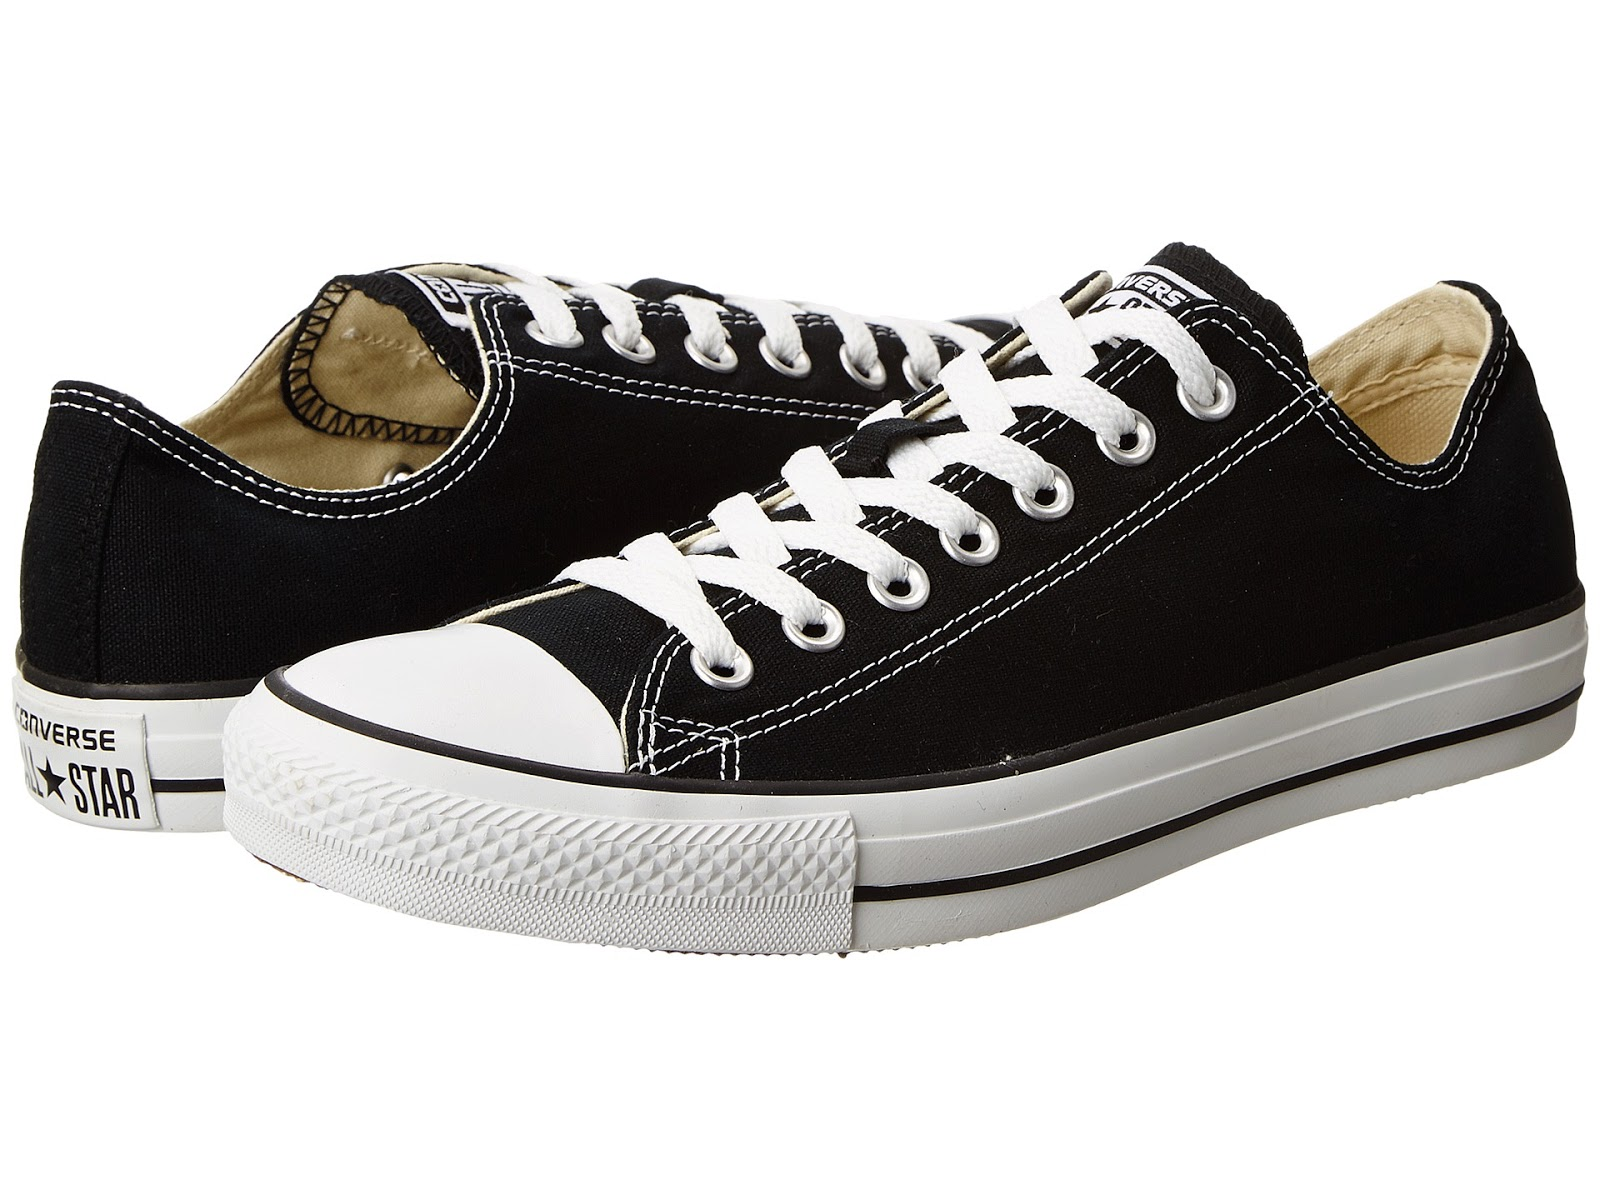 Black Friday Converse Shoes